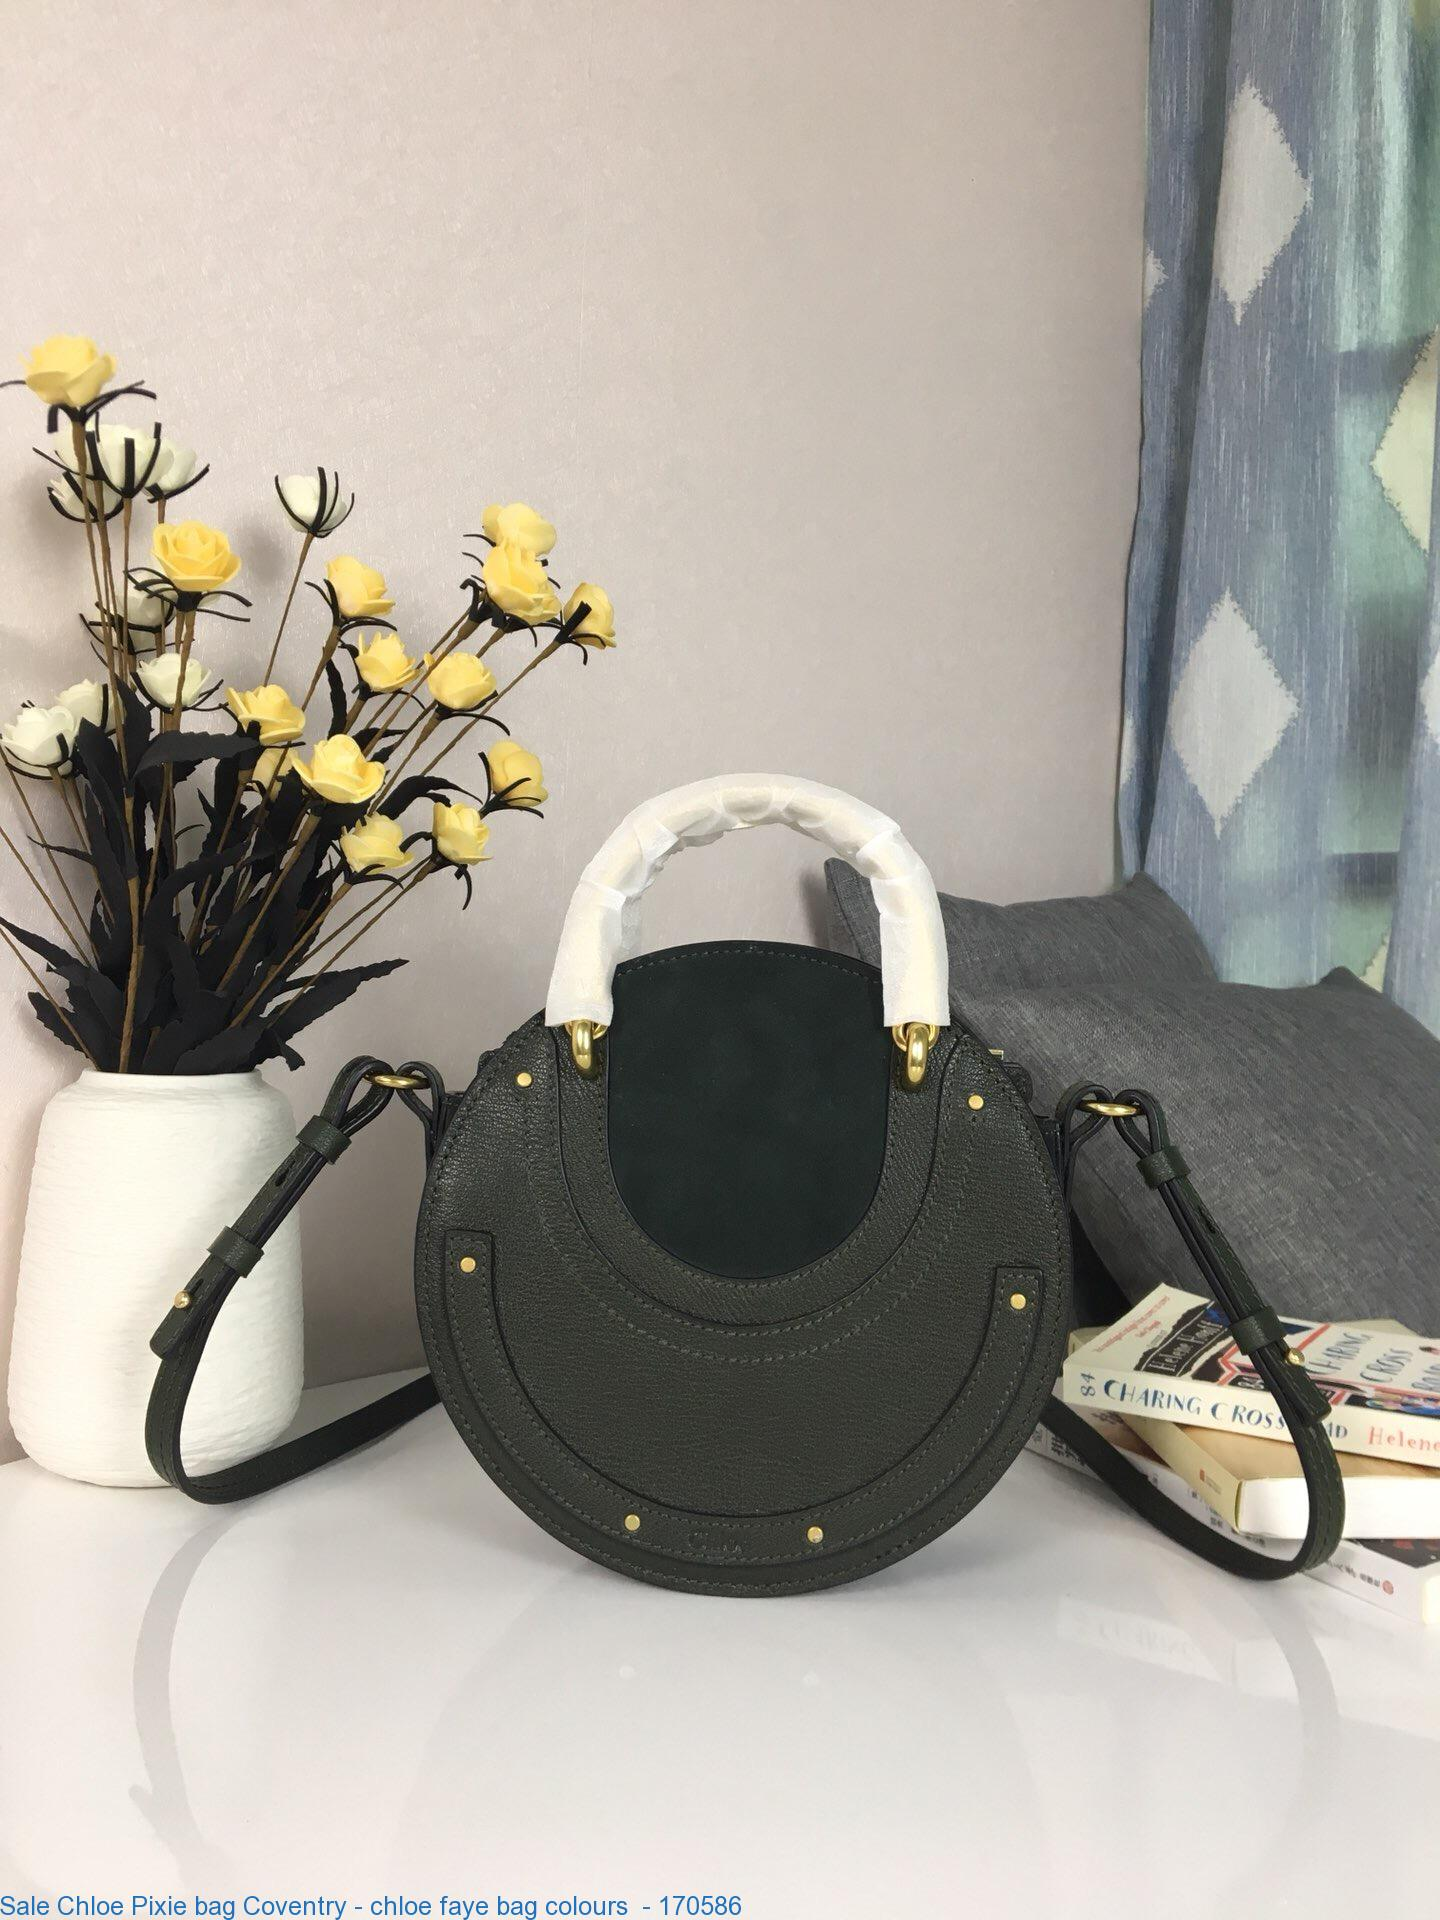 c68a6dc431 Sale Chloe Pixie bag Coventry – chloe faye bag colours – 170586 – Chloe Bags  Replica – Replica Chloe Bags for China